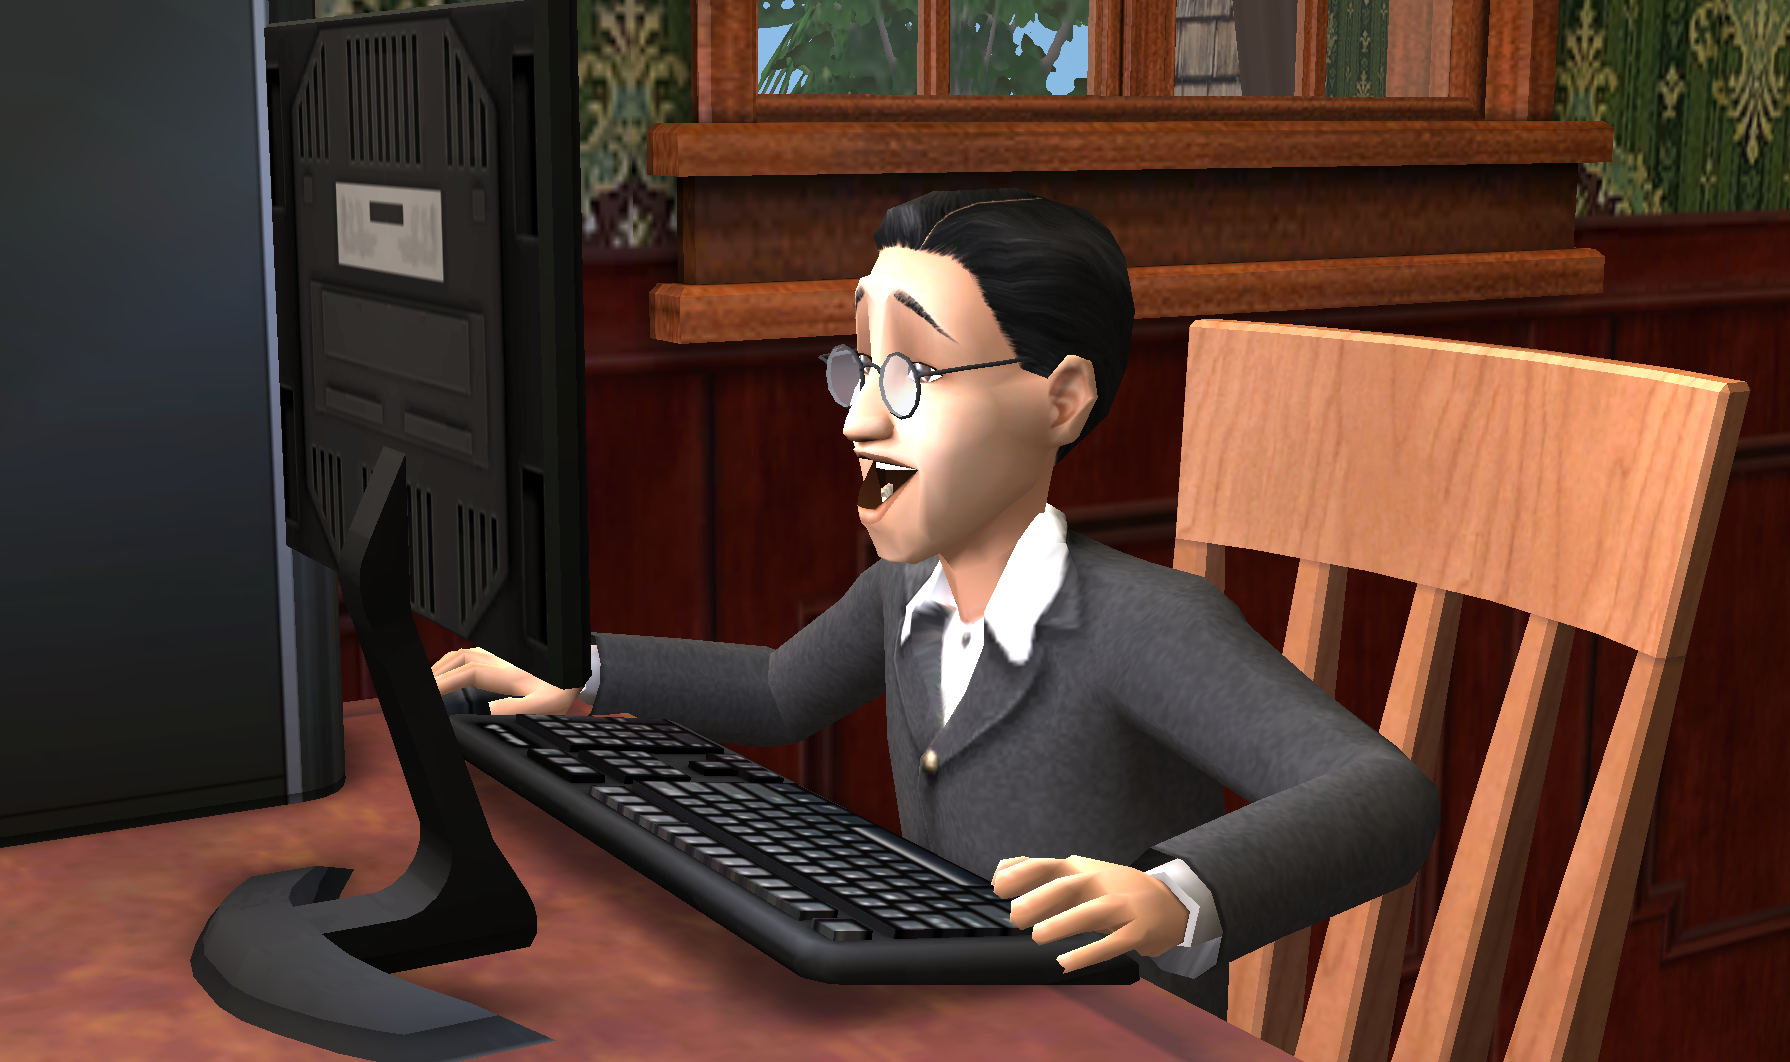 How to Play The Sims 2 on Windows 10: Fix Crashes and Pink Flashing Graphics with the 4BG Patch